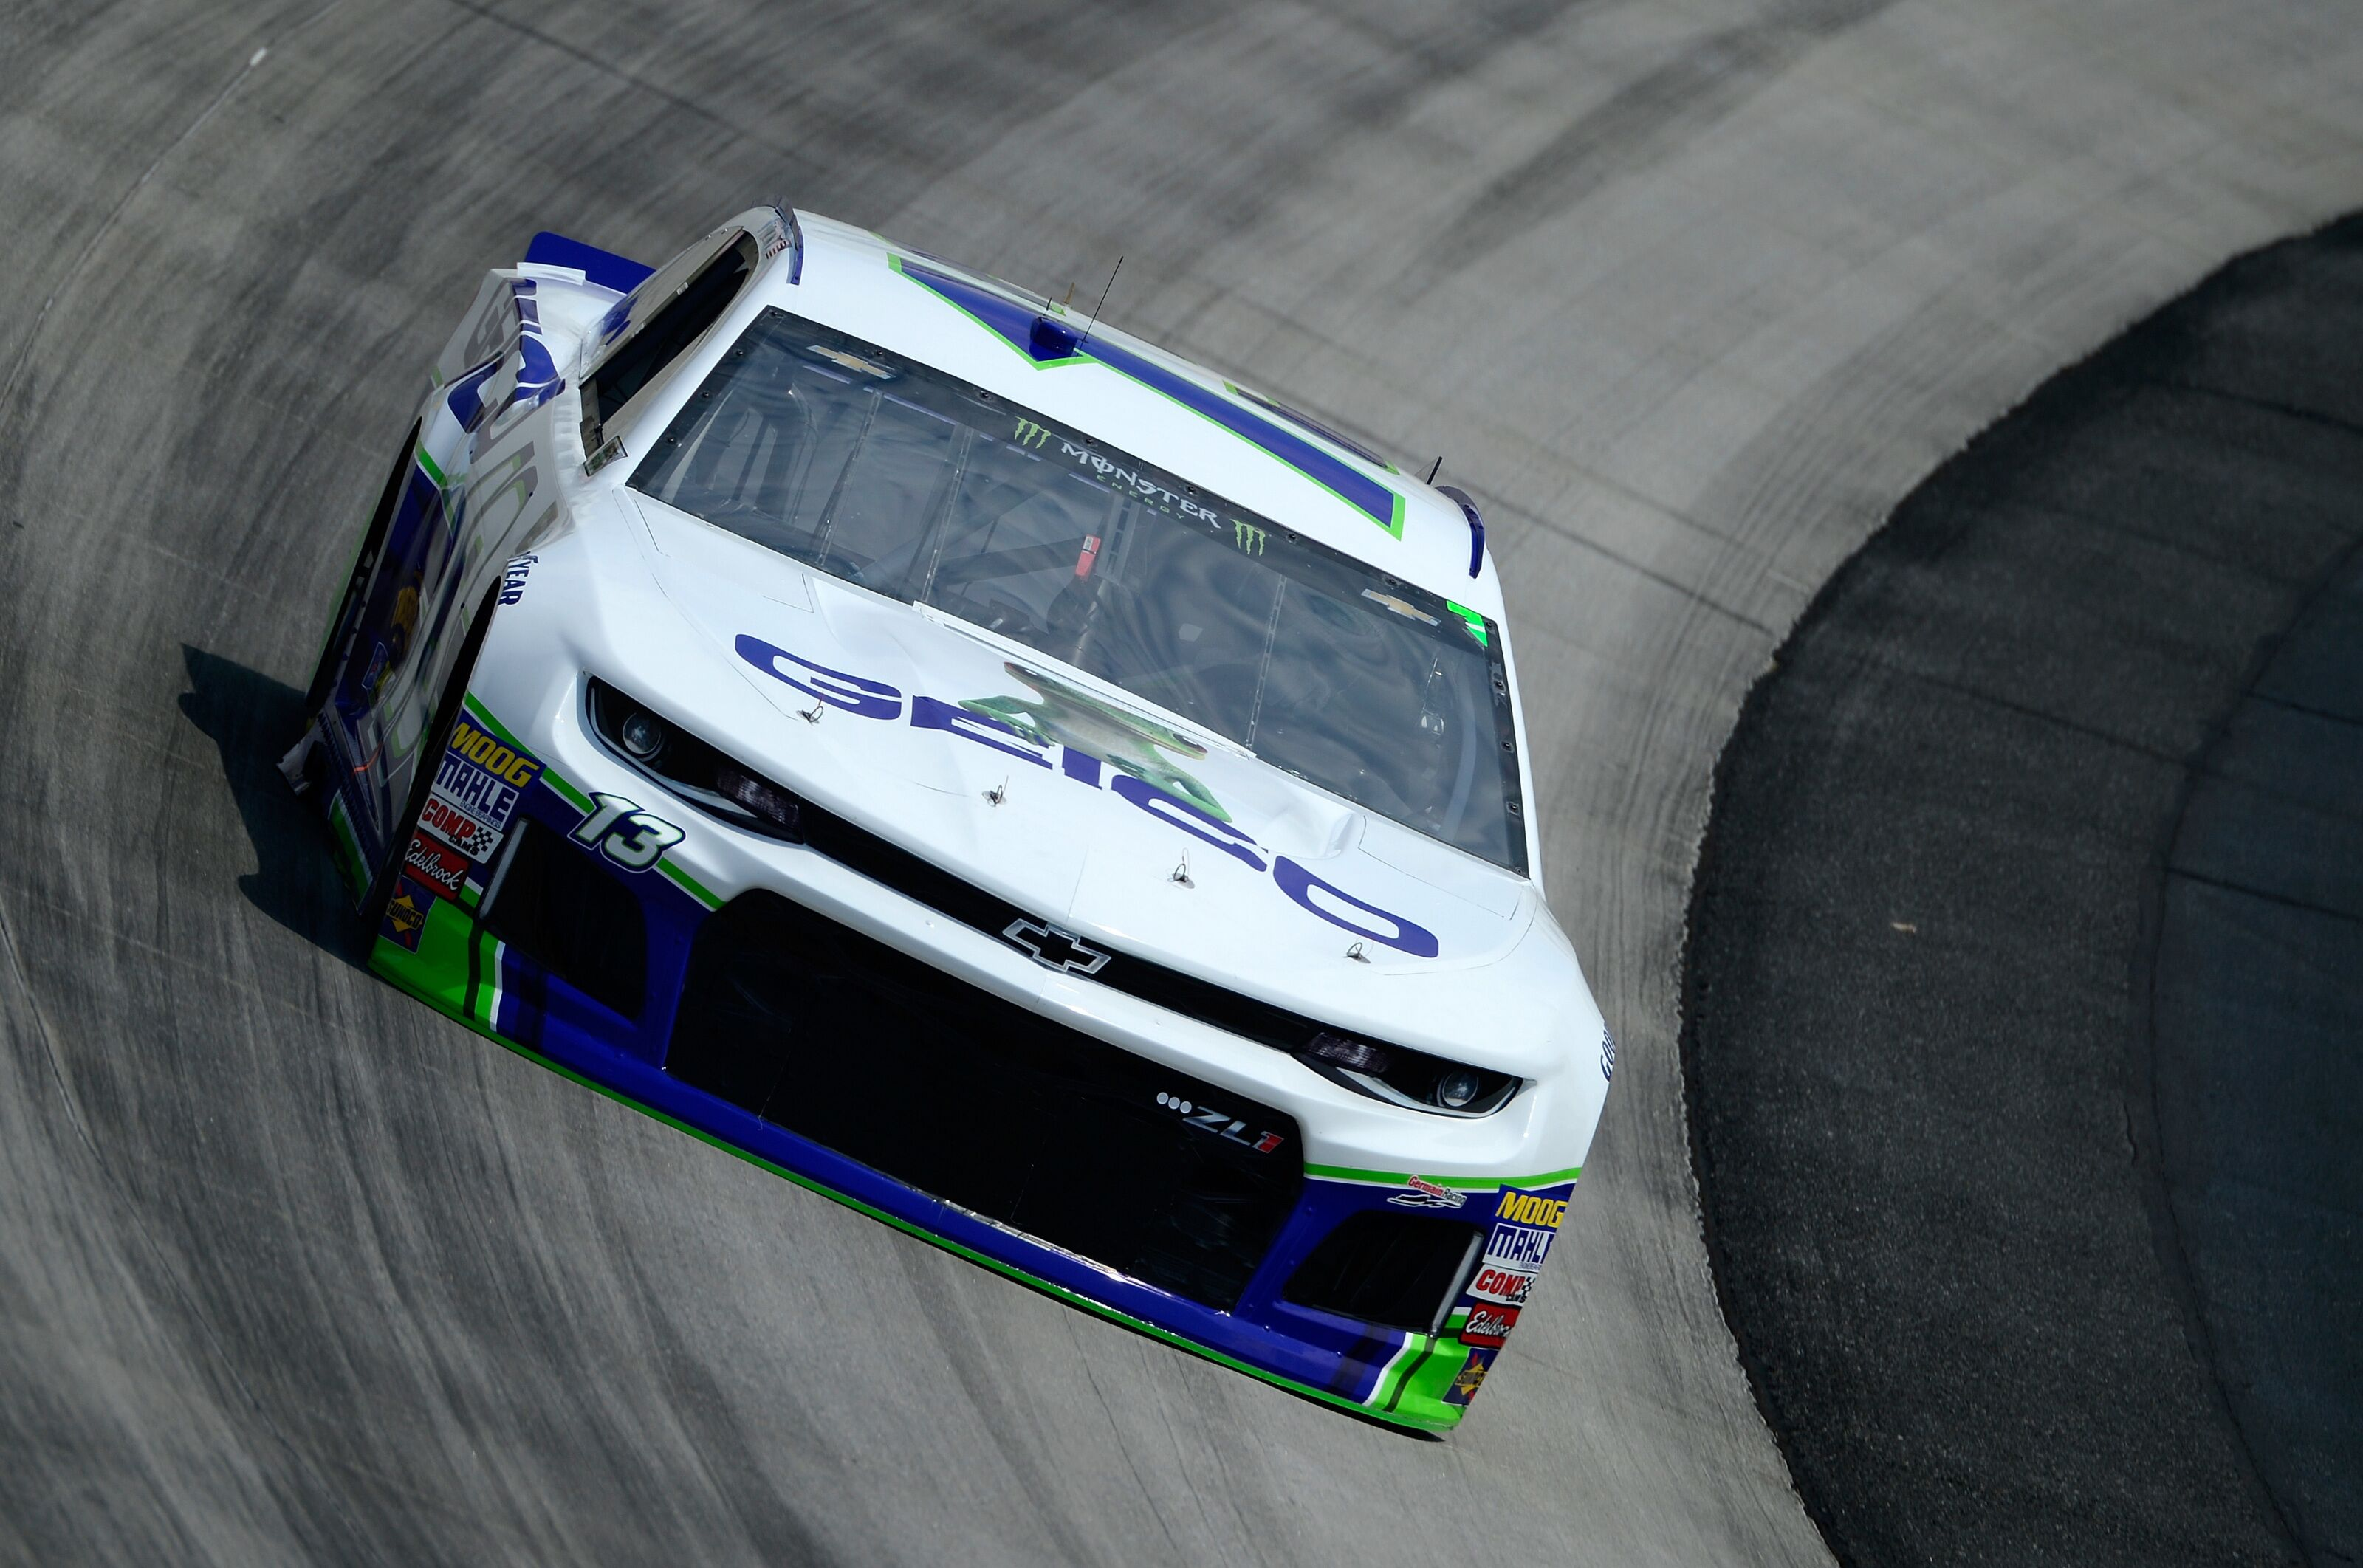 What are the Las Vegas odds for the NASCAR race at Dover?